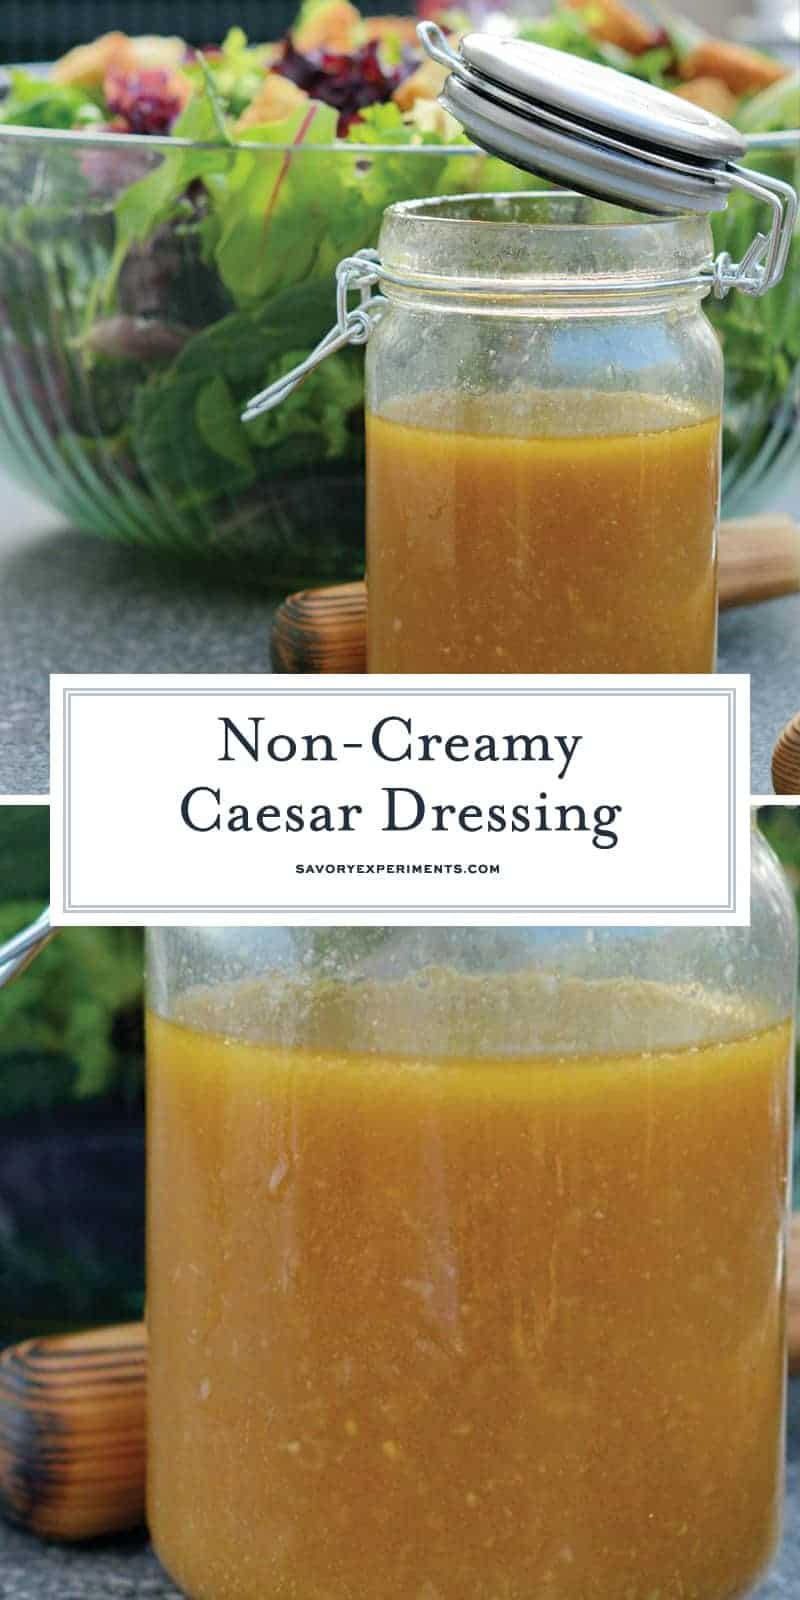 This Non-Creamy Caesar Salad Dressing is a lighter version of the creamy favorite and it only take 10 minutes to make (without anchovies)! #homemadecaesarsaladdressing #caesarsaladdressingwithnoanchovies www.savoryexperiments.com